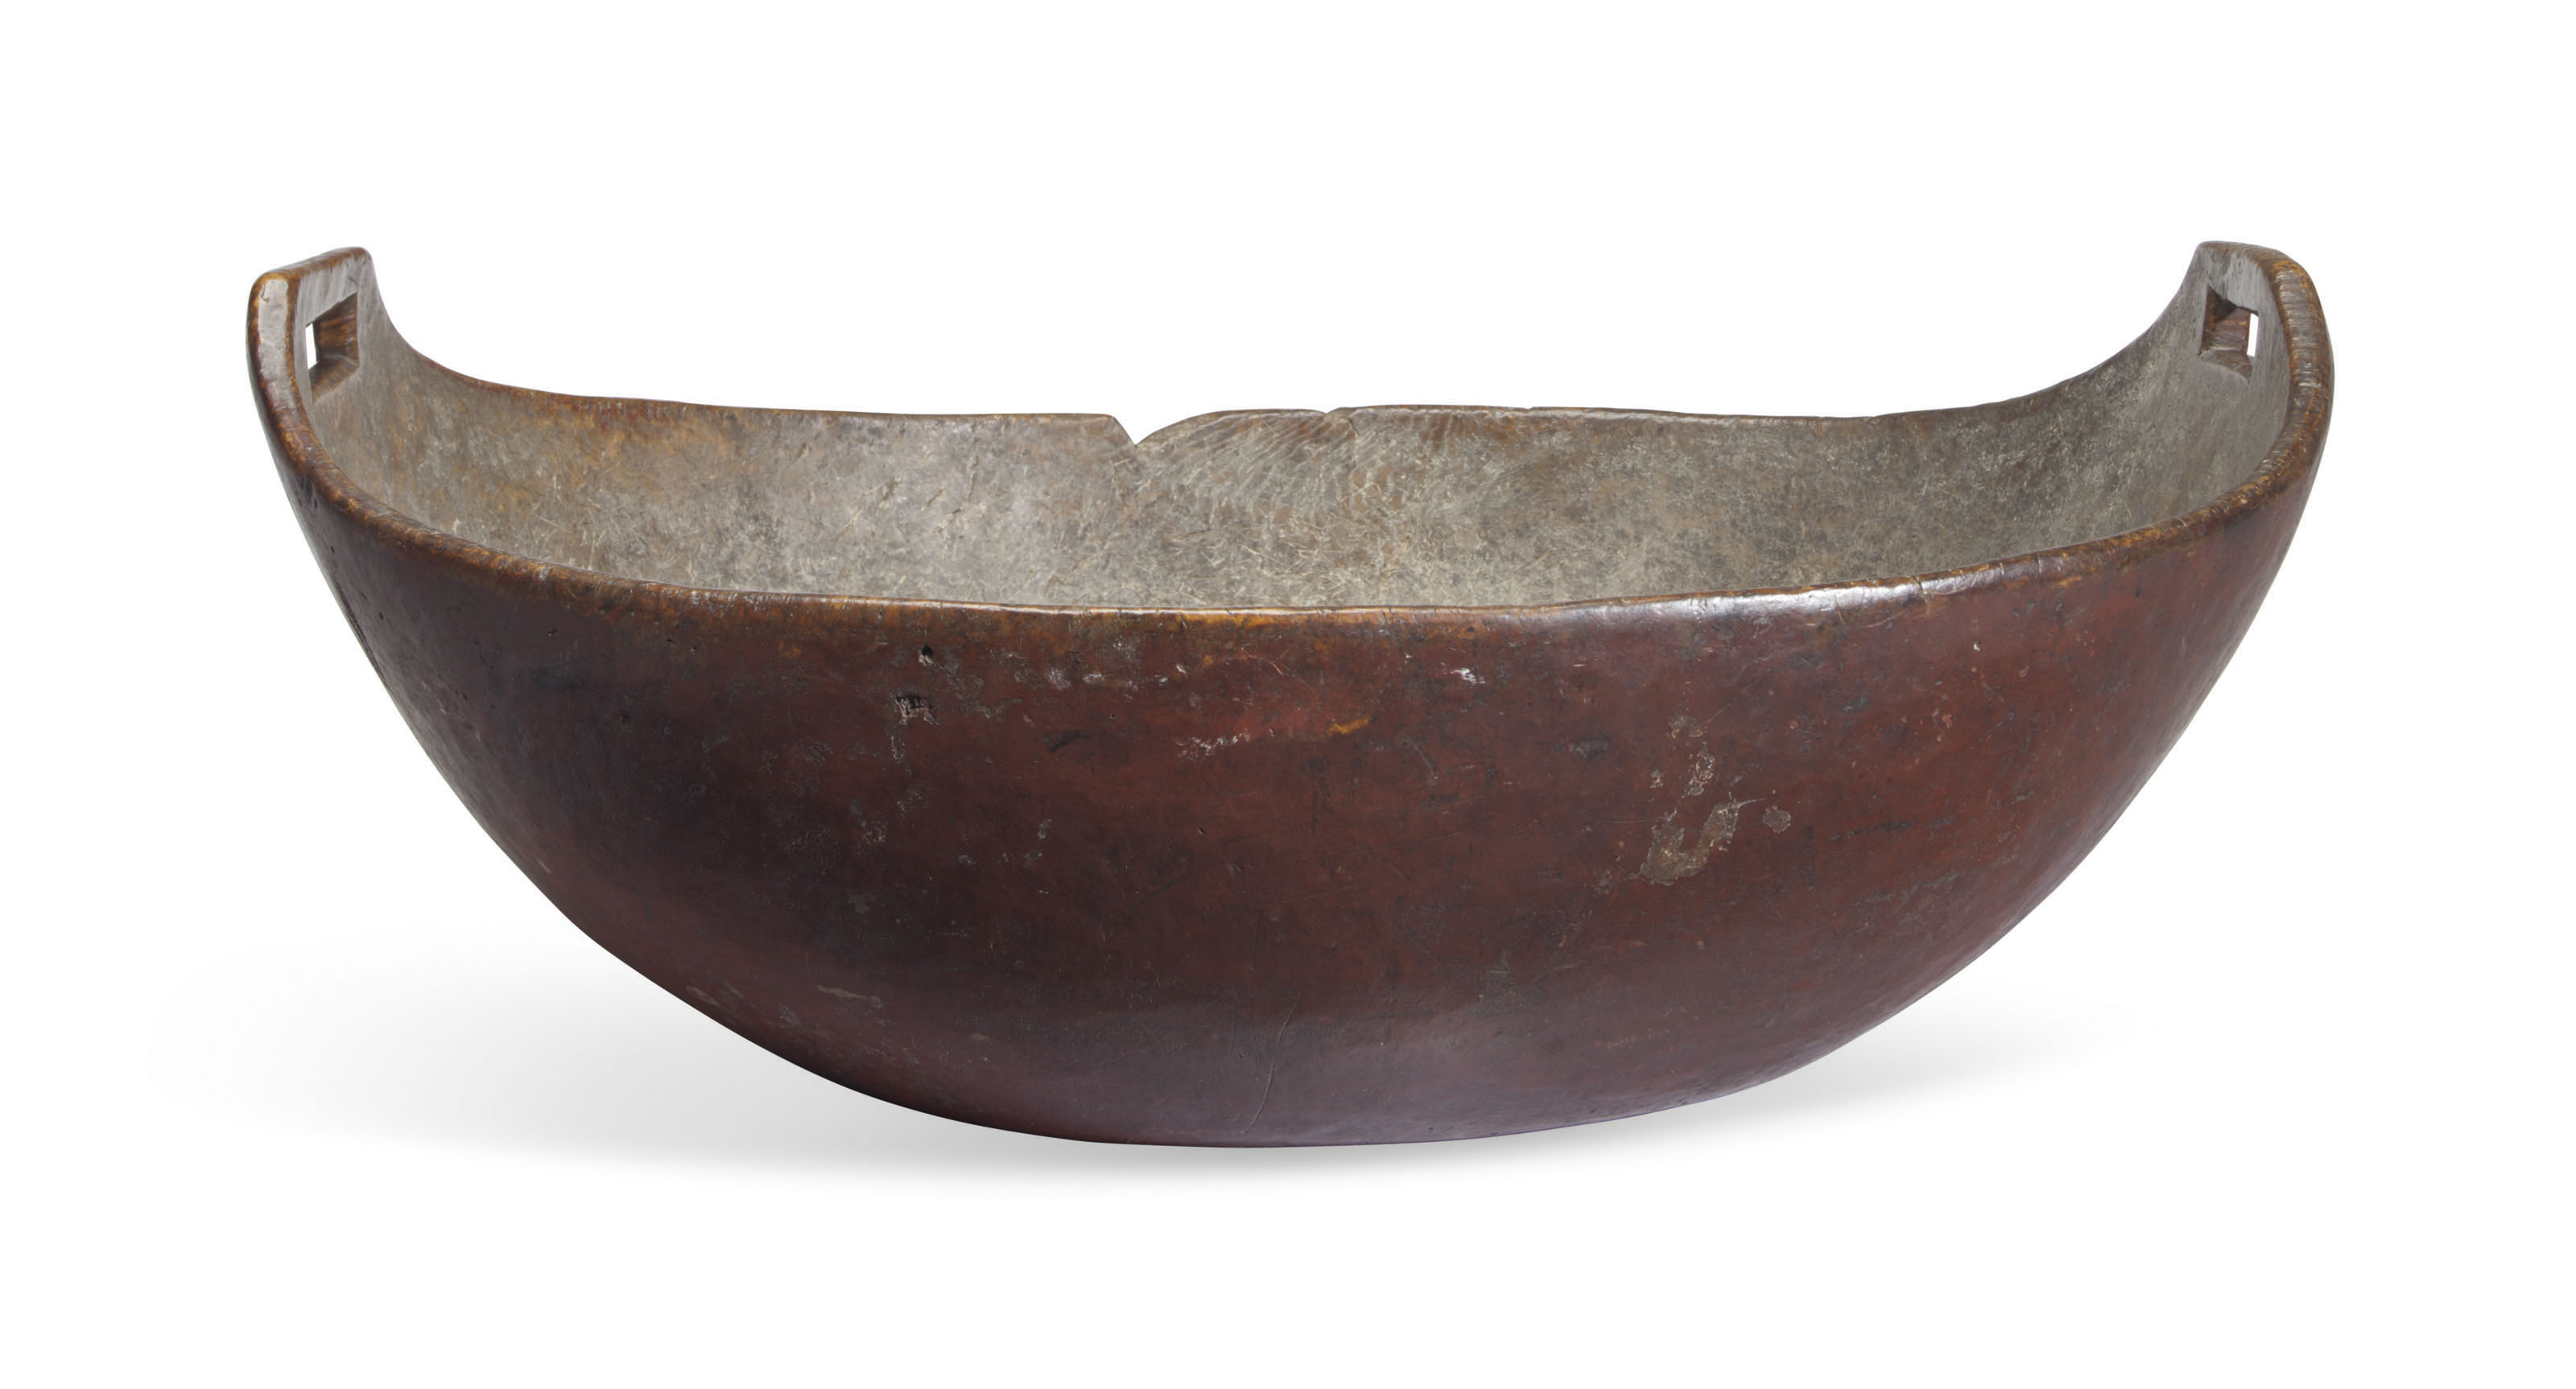 A LARGE NATIVE AMERICAN RED-PAINTED BURLWOOD OPEN-HANDLED BOWL